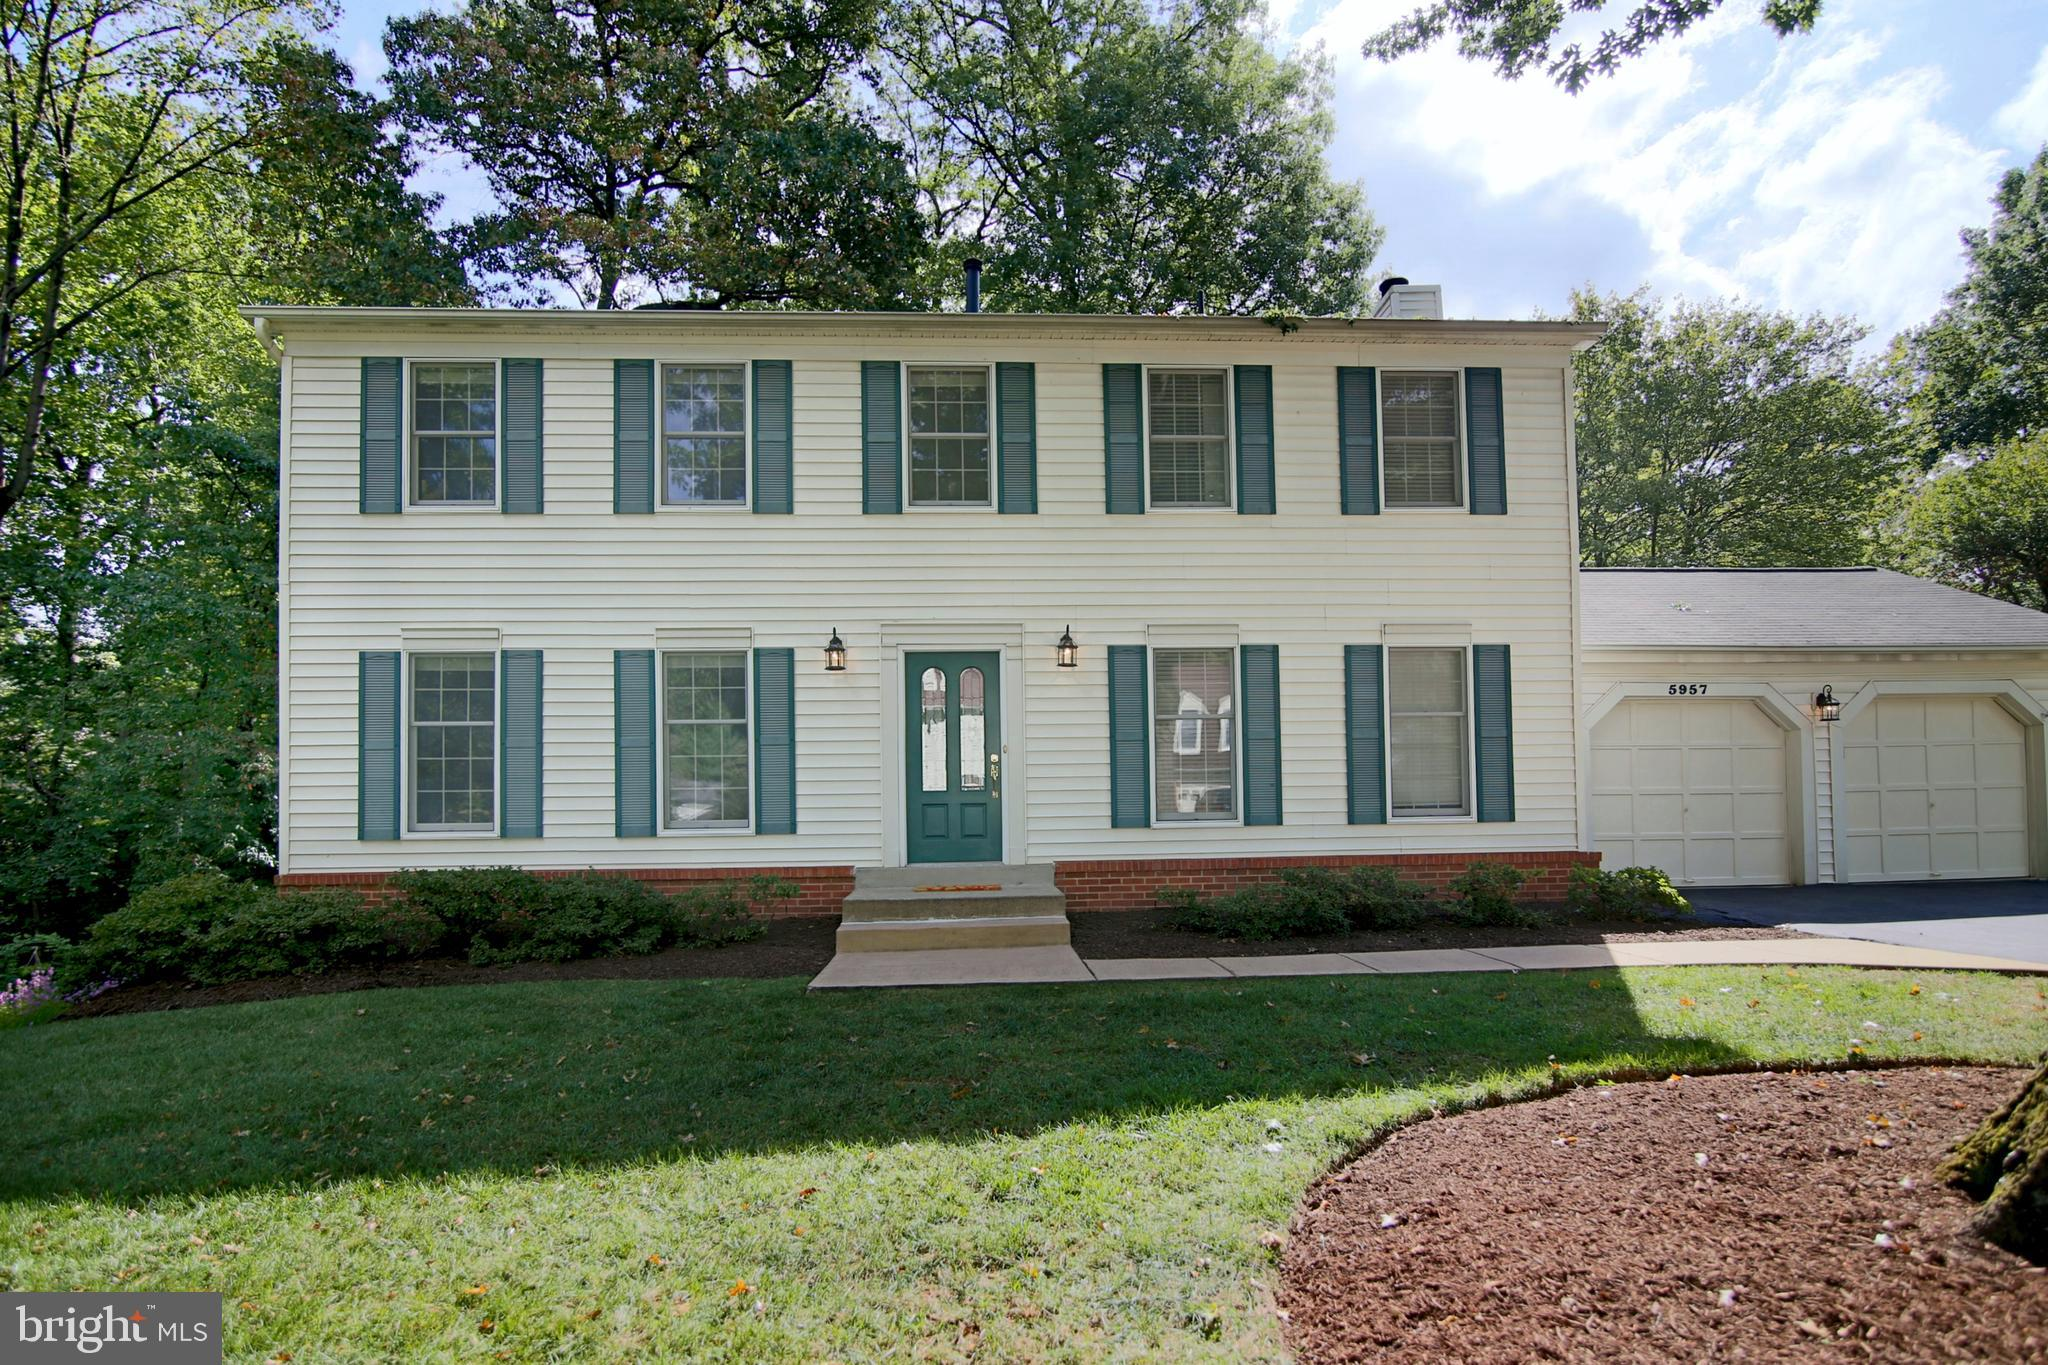 Will not last!! Welcome to this beautiful, move-in ready Burke Centre colonial on tree lined cul-de-sac. Move in ready, spacious 5 bedroom, 3.5 bath home with luxe $47,000 screened-in porch and walkout, finished basement. You~ll love all the custom features: homey main-level hardwoods, crown moldings, updated recessed lighting, fireplace, vinyl siding, newer back patio and composite deck. Eat-in kitchen sports 2017 stainless steel appliances, gleaming granite counters and huge pantry. Upstairs find four roomy bedrooms, each with a ceiling fan. Don~t miss the mater bedroom~s two closets, dressing area and mater bath.The walkout lower level has a large family/rec room~perfect for entertaining~new carpeting, a fifth bedroom, full bath, large laundry room with 2017 washer/dryer and tons of extra storage. Note the over 2,500 sq ft plus a generous two-car garage and driveway. Burke Centre includes acres of woods, walking/jogging paths, tot lots, lakes, swimming pools, community centers, tennis and basketball courts. LOCATION! LOCATION! LOCATION! This is a commuters~ dream with easy access to 495/HOT lanes, Fairfax County Parkway, two VRE stations, Amtrak station, Metro bus stop, and commuter parking lot. Close to GMU and NVCC campuses.~